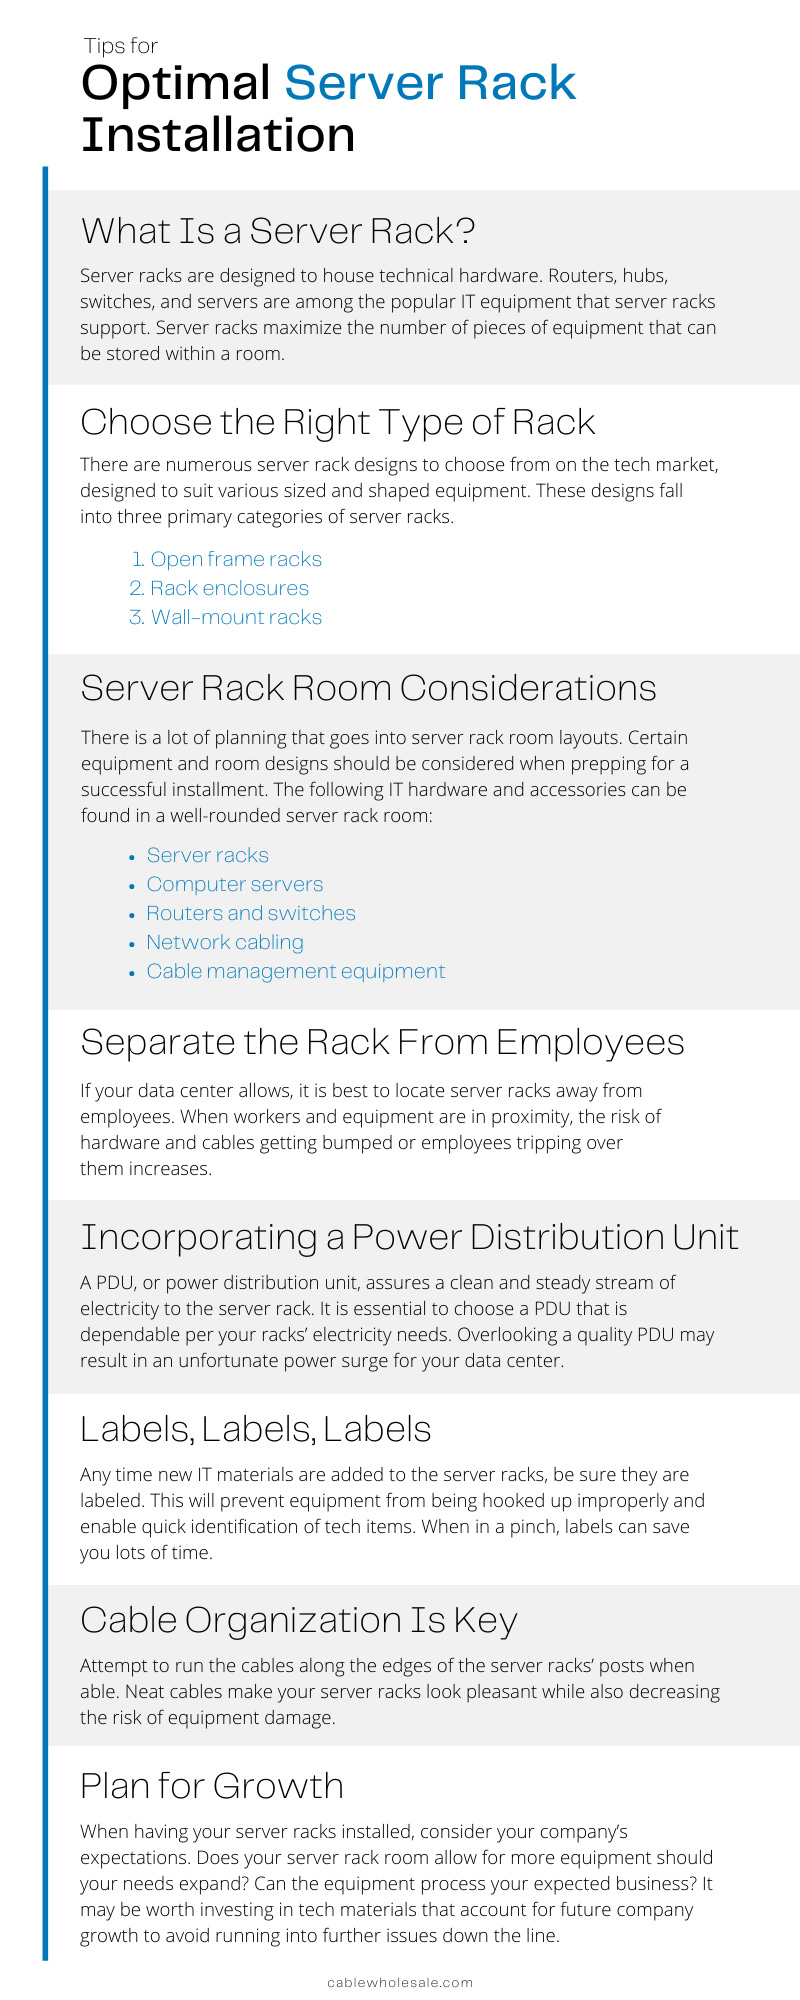 Tips for Optimal Server Rack Installation